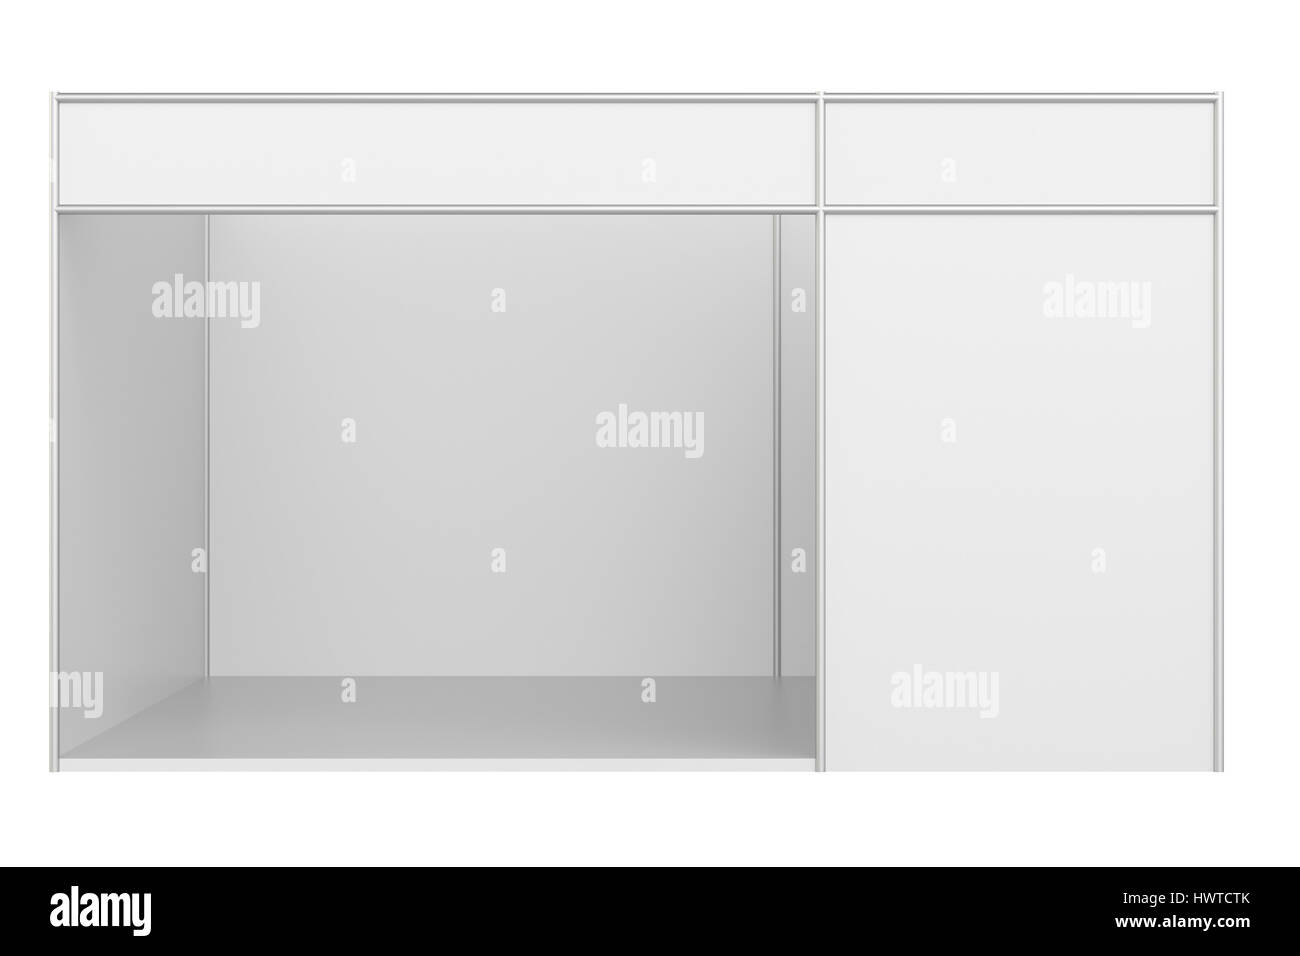 Exhibition Stand Template : Exhibition stand design template corporate identity d endering